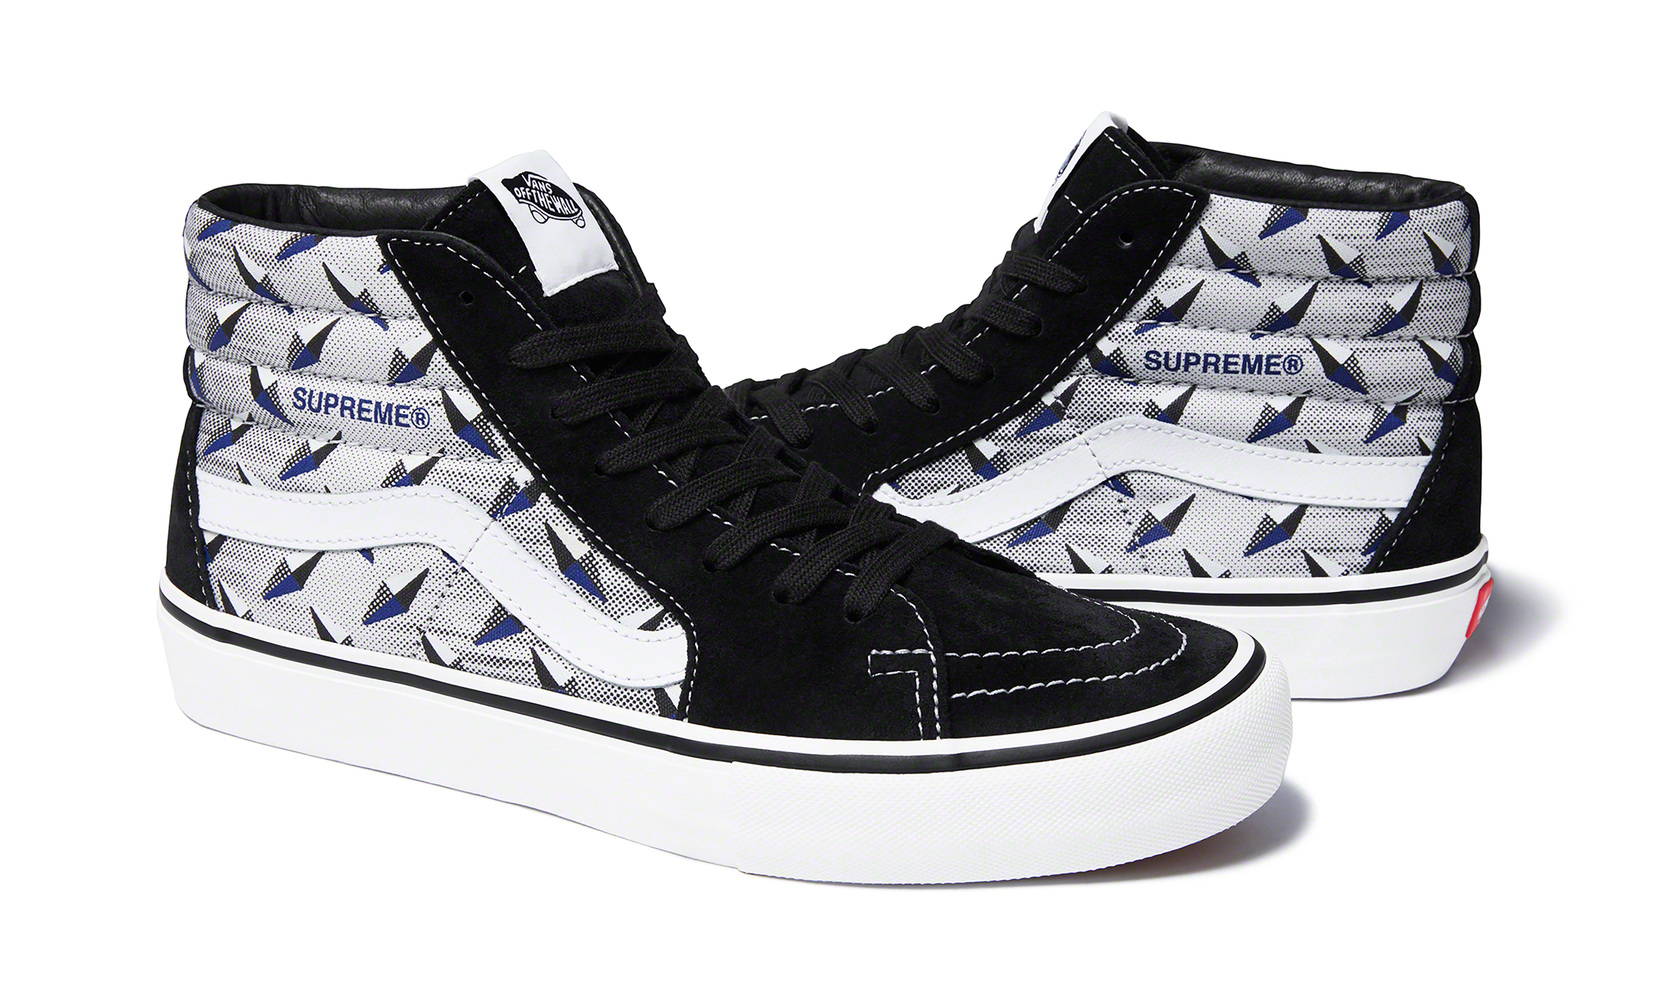 Supreme X Vans Diamond Plate